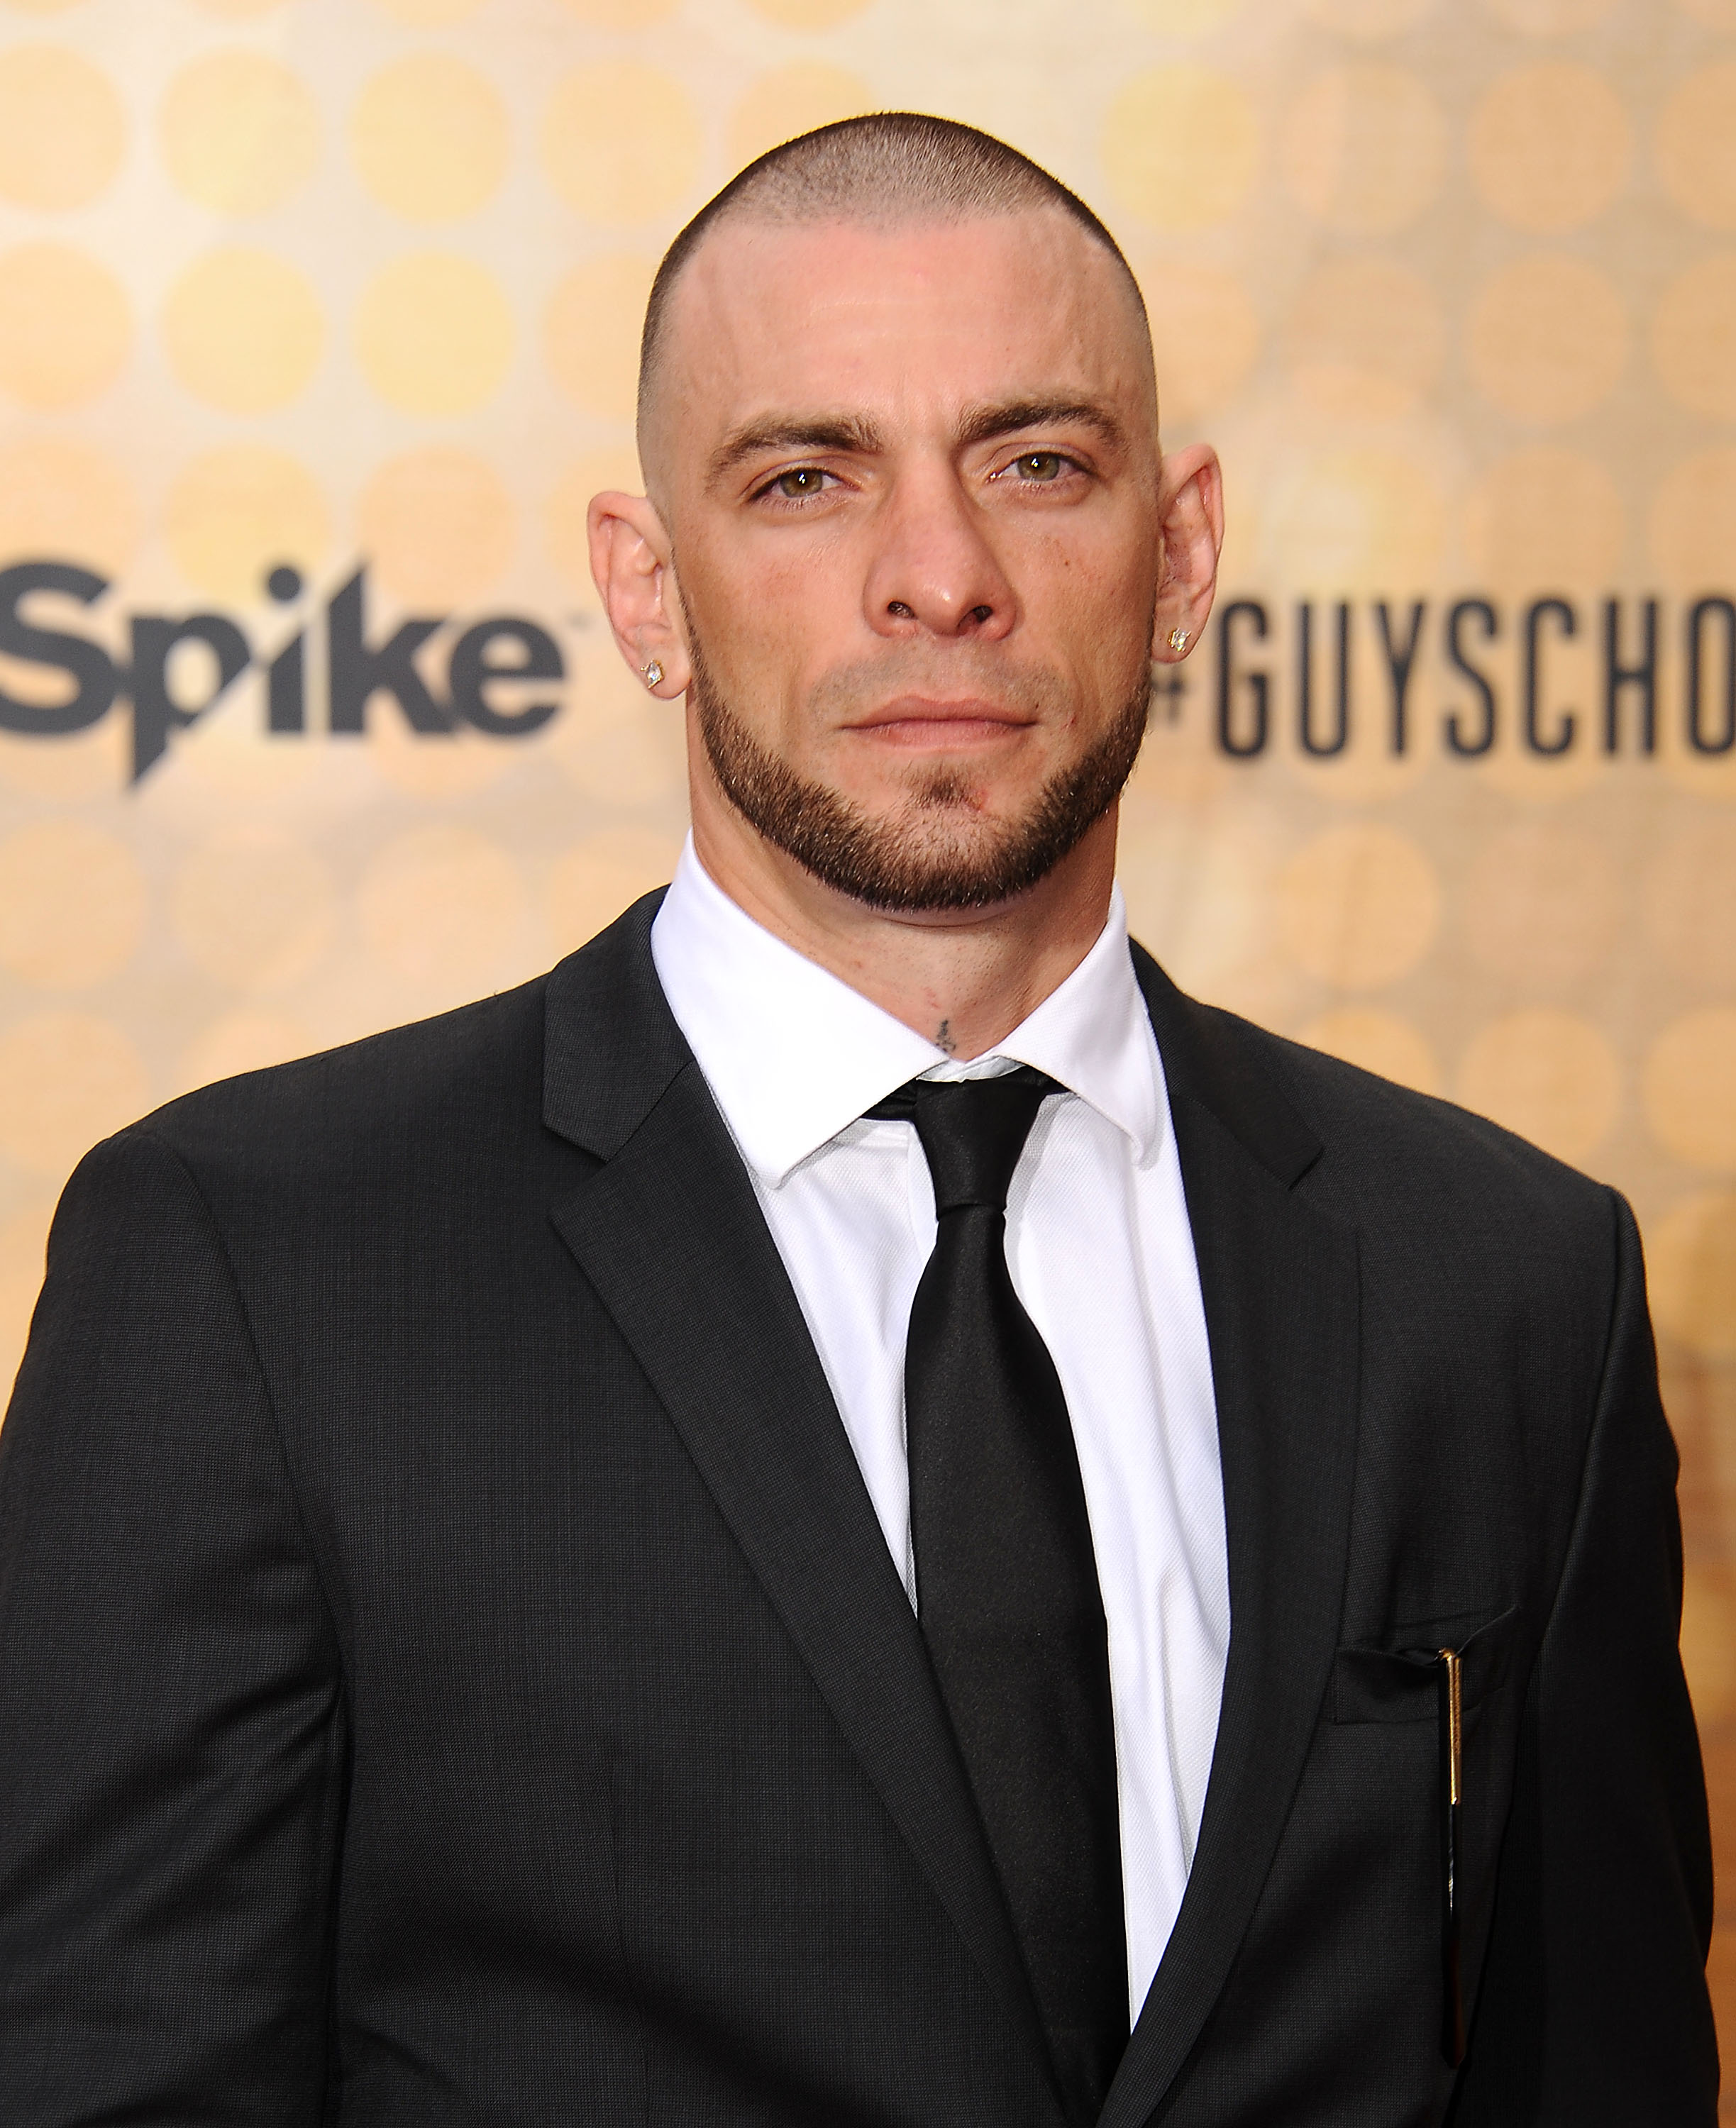 Ex-Bellator fighter Joe Schilling is facing one misdemeanor charge of simple battery after his recent physical altercation with a bar patron.